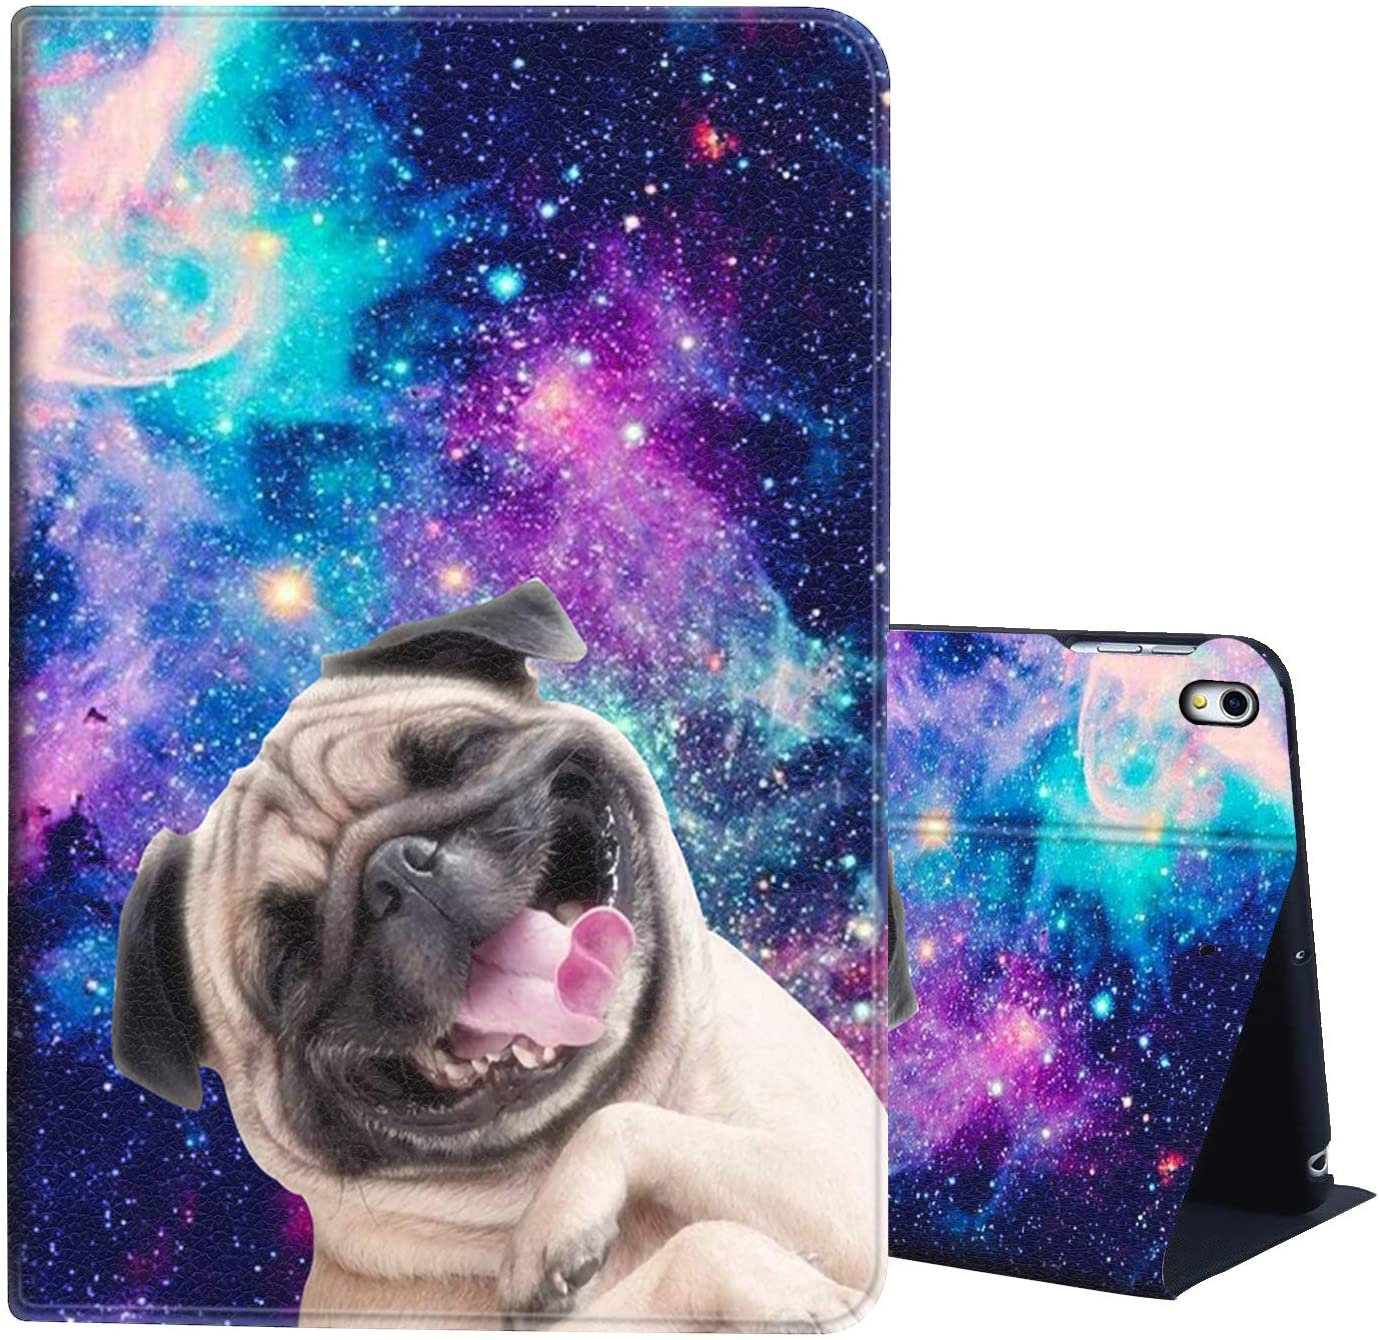 iPad Pro 12.9 Case 2018,AIRWEE Full Body Protective Rugged Shockproof Case with Adjustable Angle & Auto Sleep/Wake for Apple iPad 12.9 Inch 3rd Gen,Shining Star Smart Dog